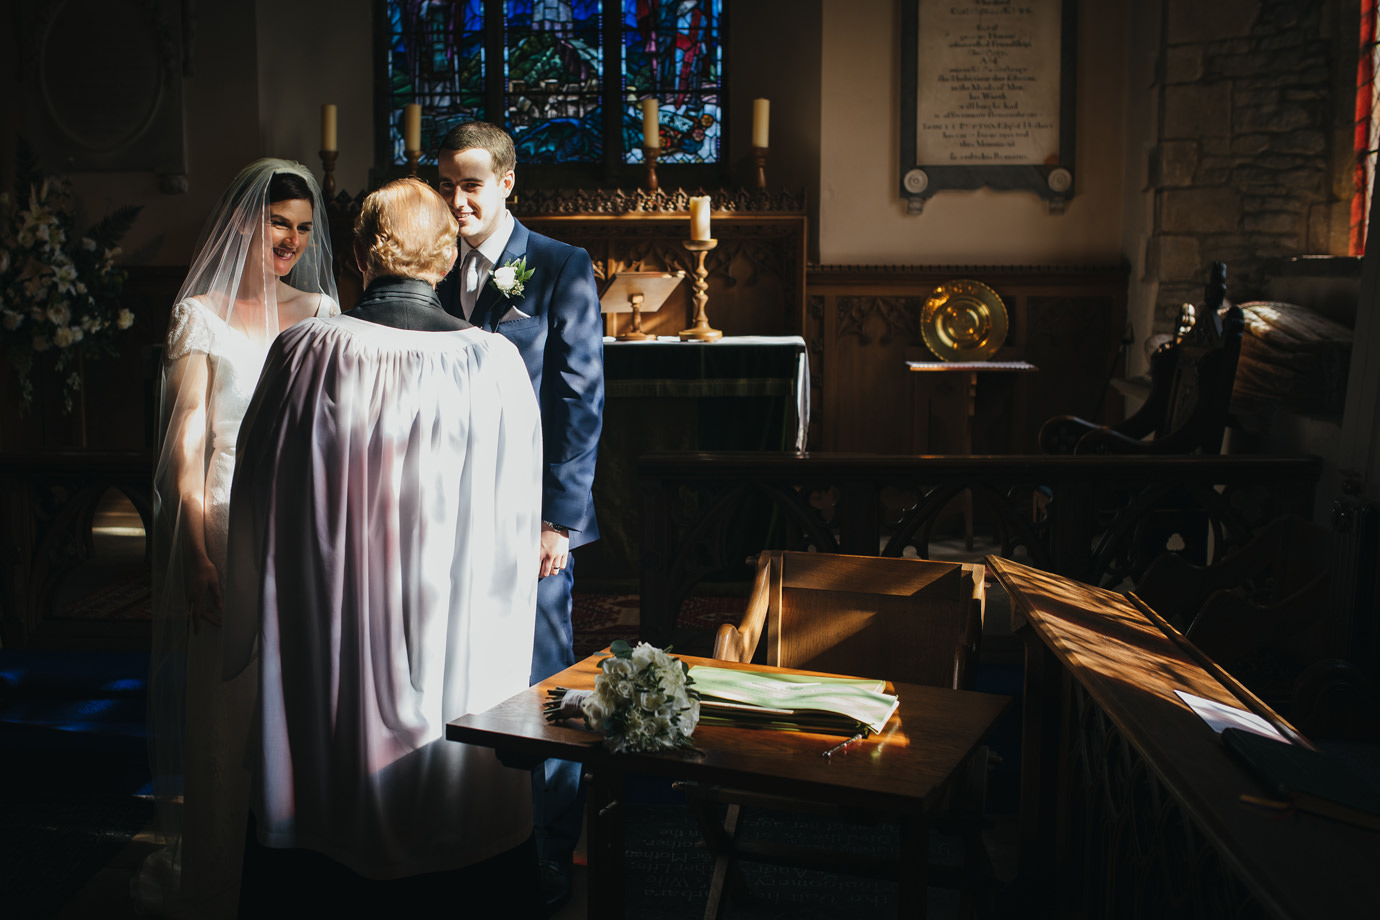 The signing of the register Documentary style Yorkshire wedding photography